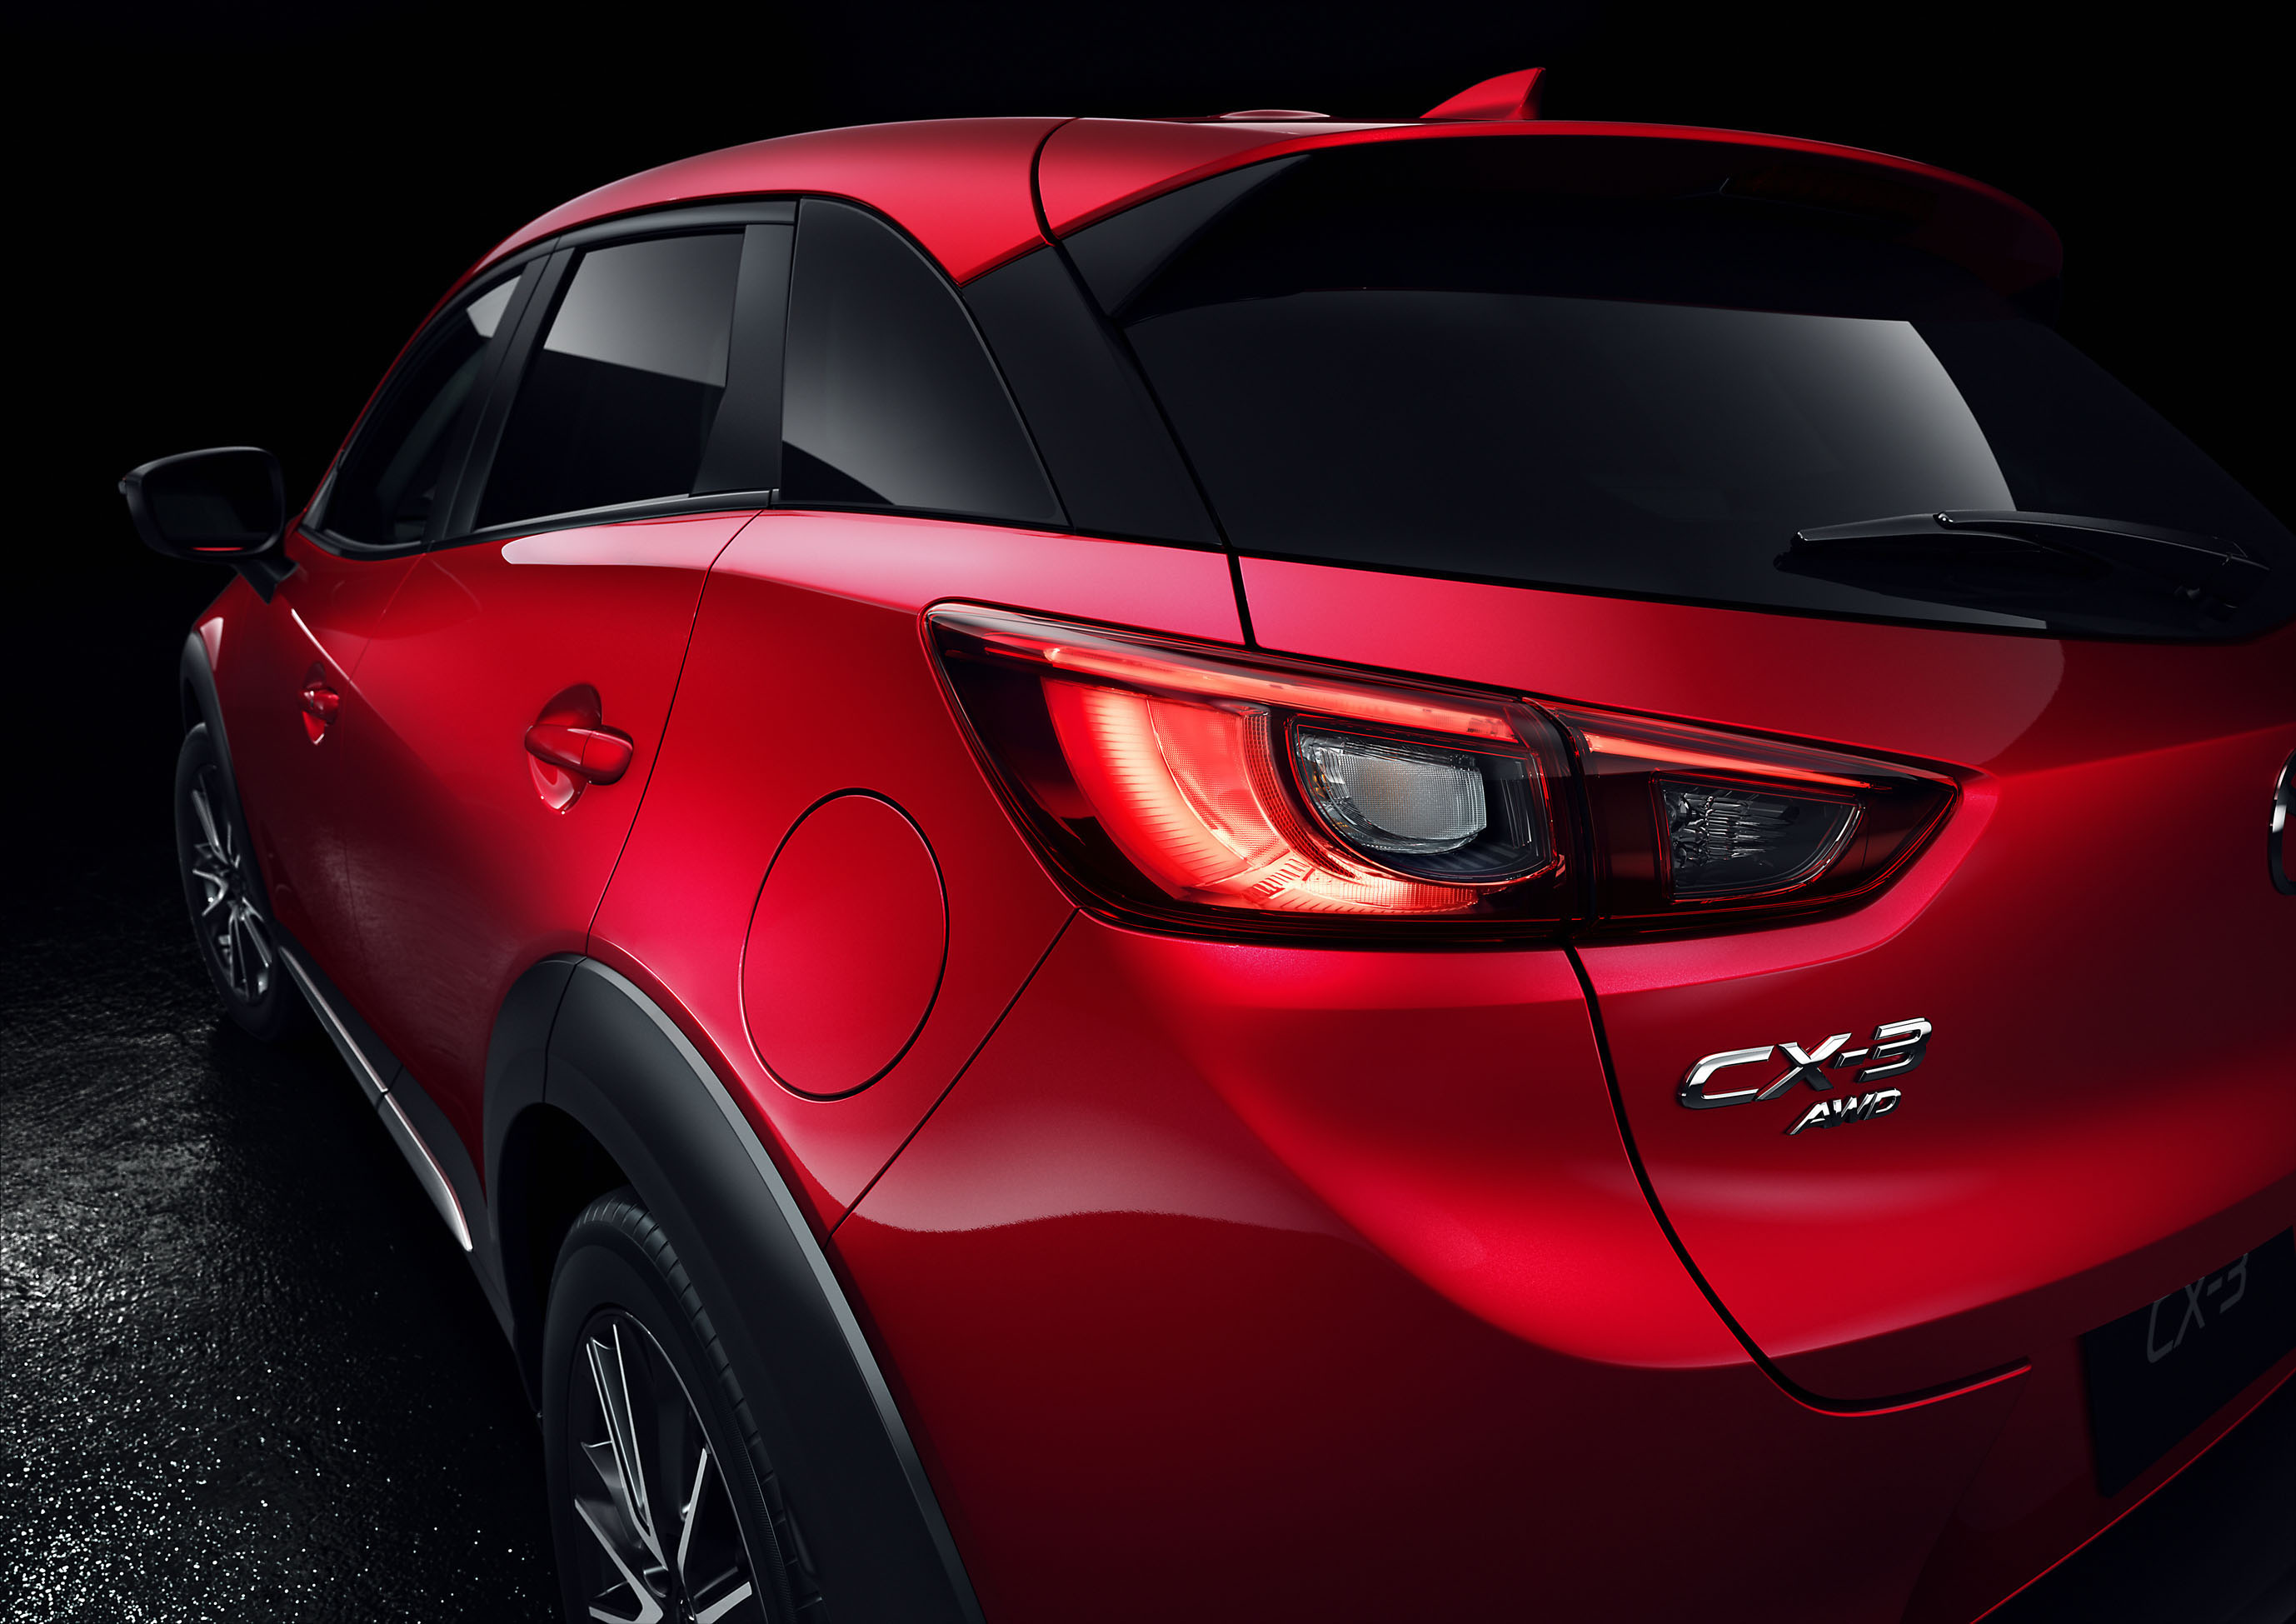 mazda cx 3 new b segment suv officially unveiled image 289192. Black Bedroom Furniture Sets. Home Design Ideas